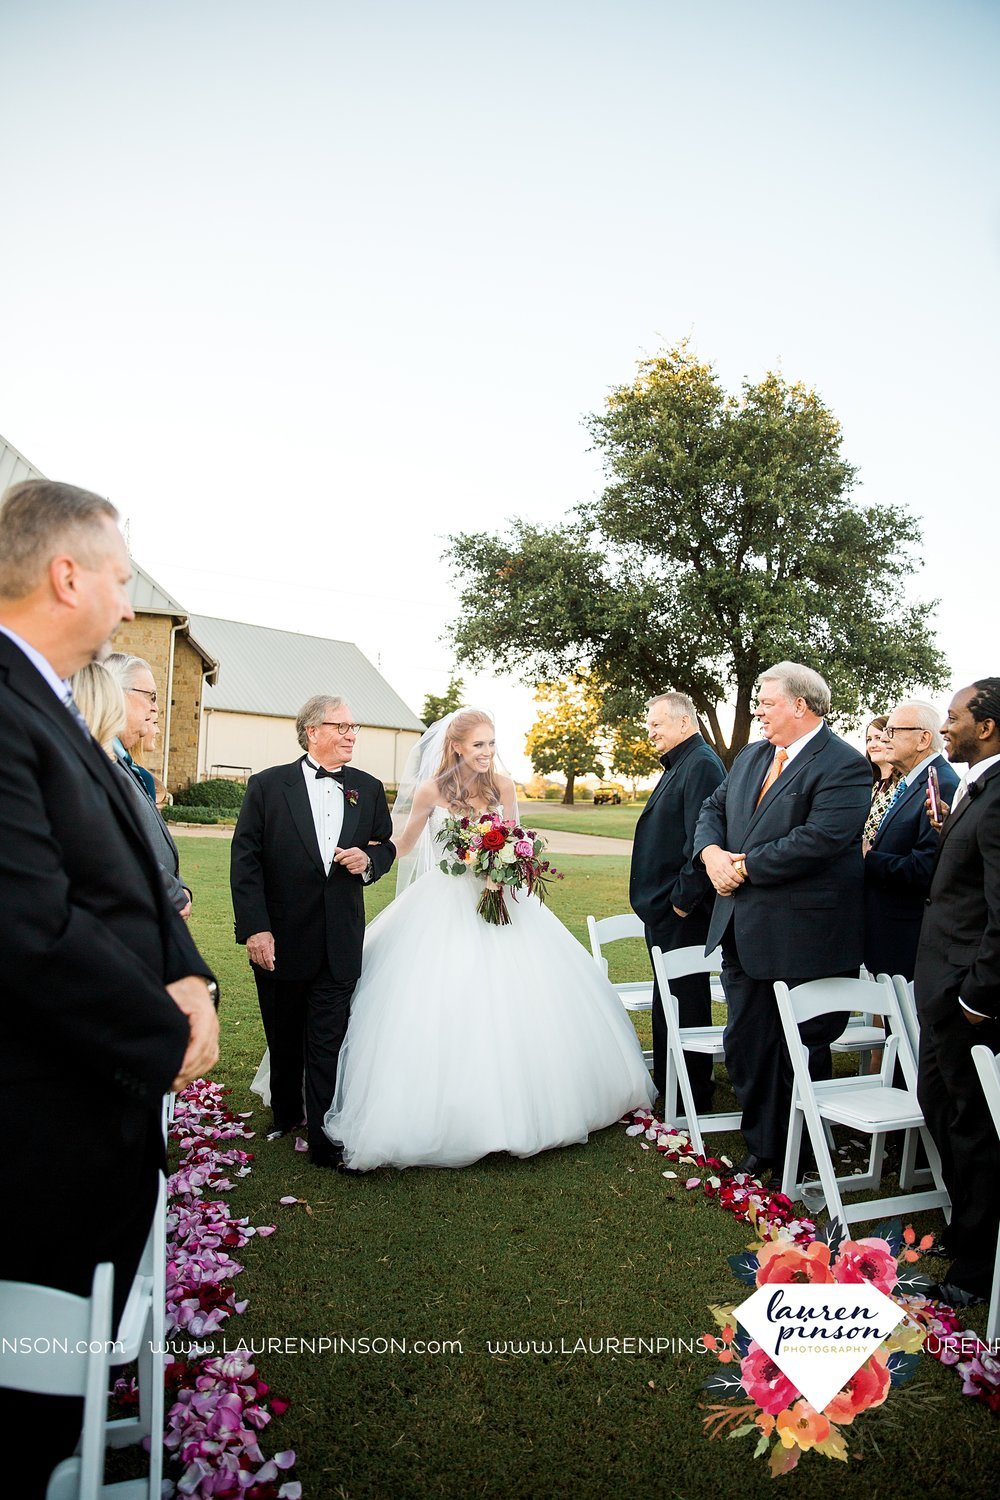 denton-lantana-dfw-texas-wedding-at-lantana-golf-club-country-wedding-by-cocofleur-events-wichita-falls-wedding-photographer_3594.jpg